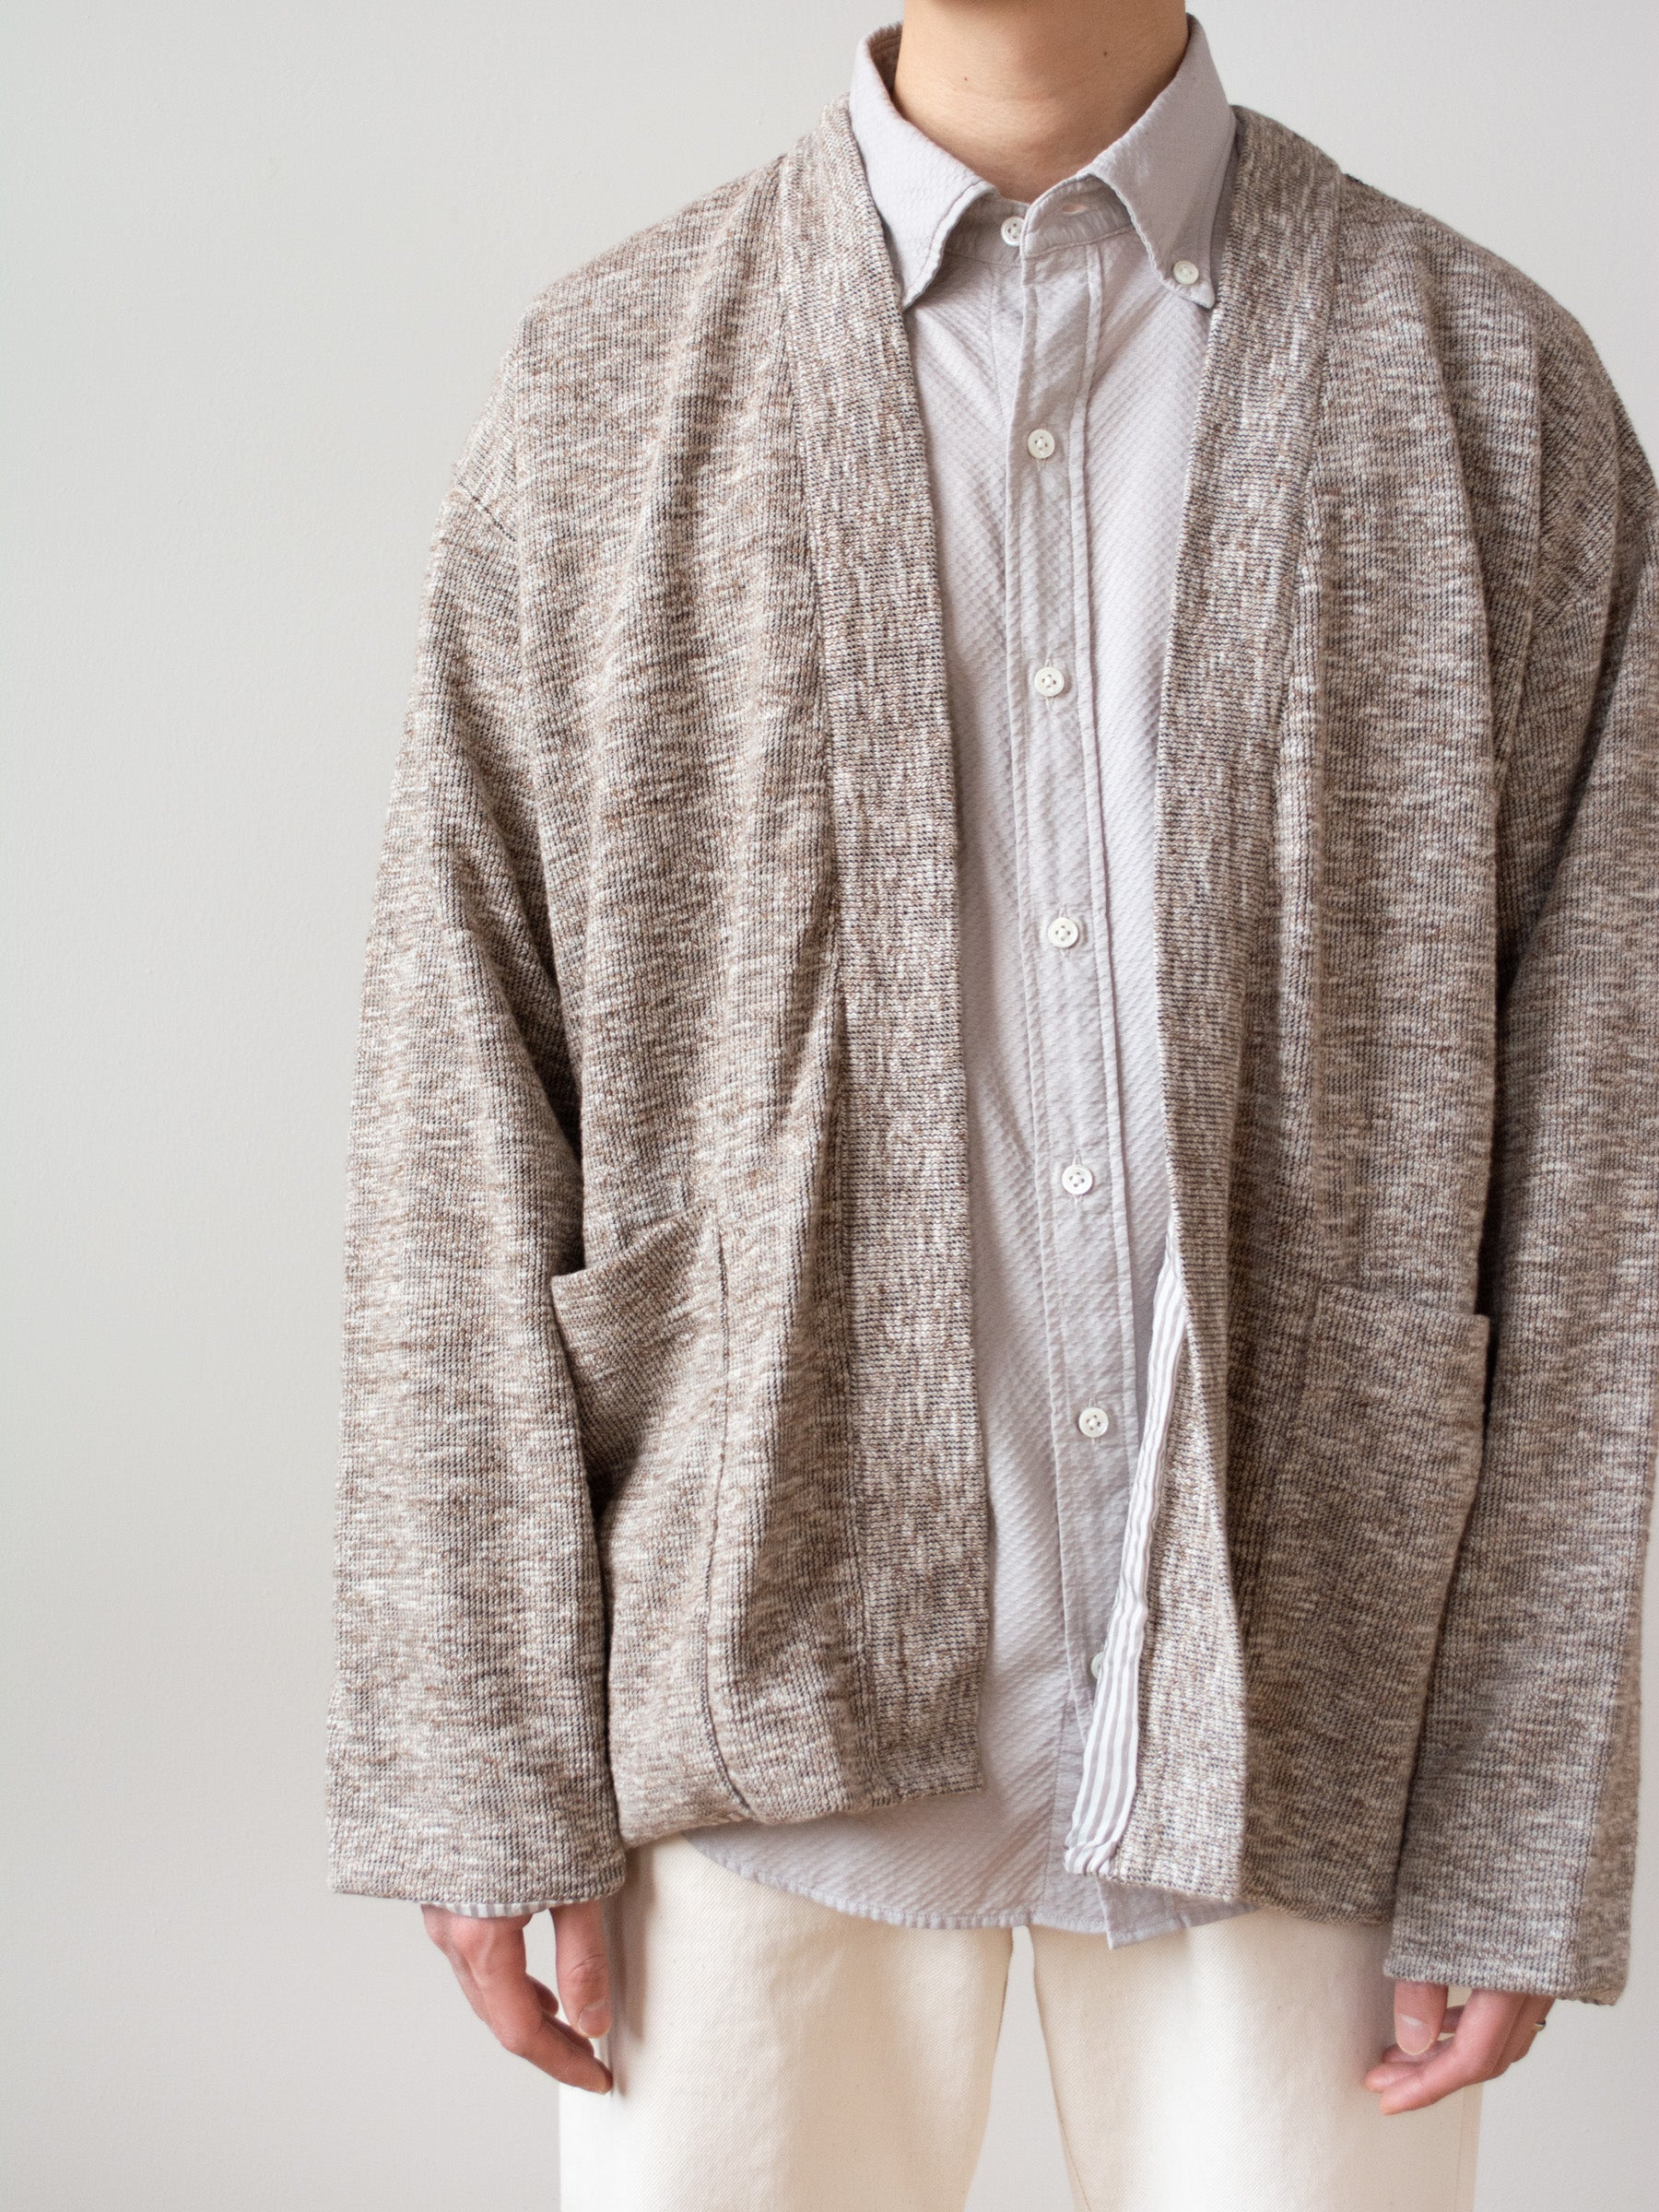 Lined Easy Cardigan - Marled Brown